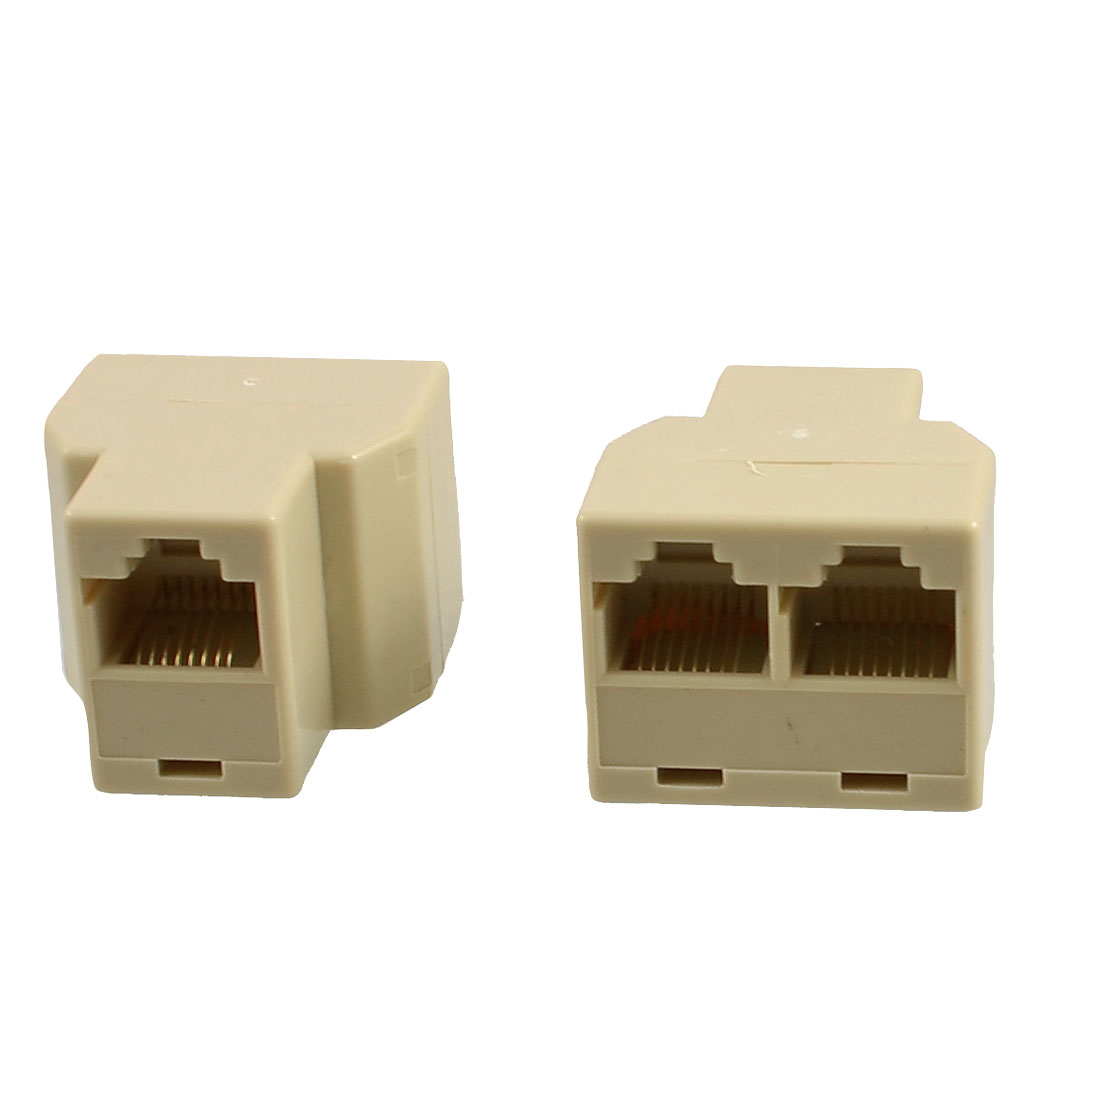 2 Pcs Telephone ADSL Modem RJ45 8P8C Plug Line Splitter Filter White